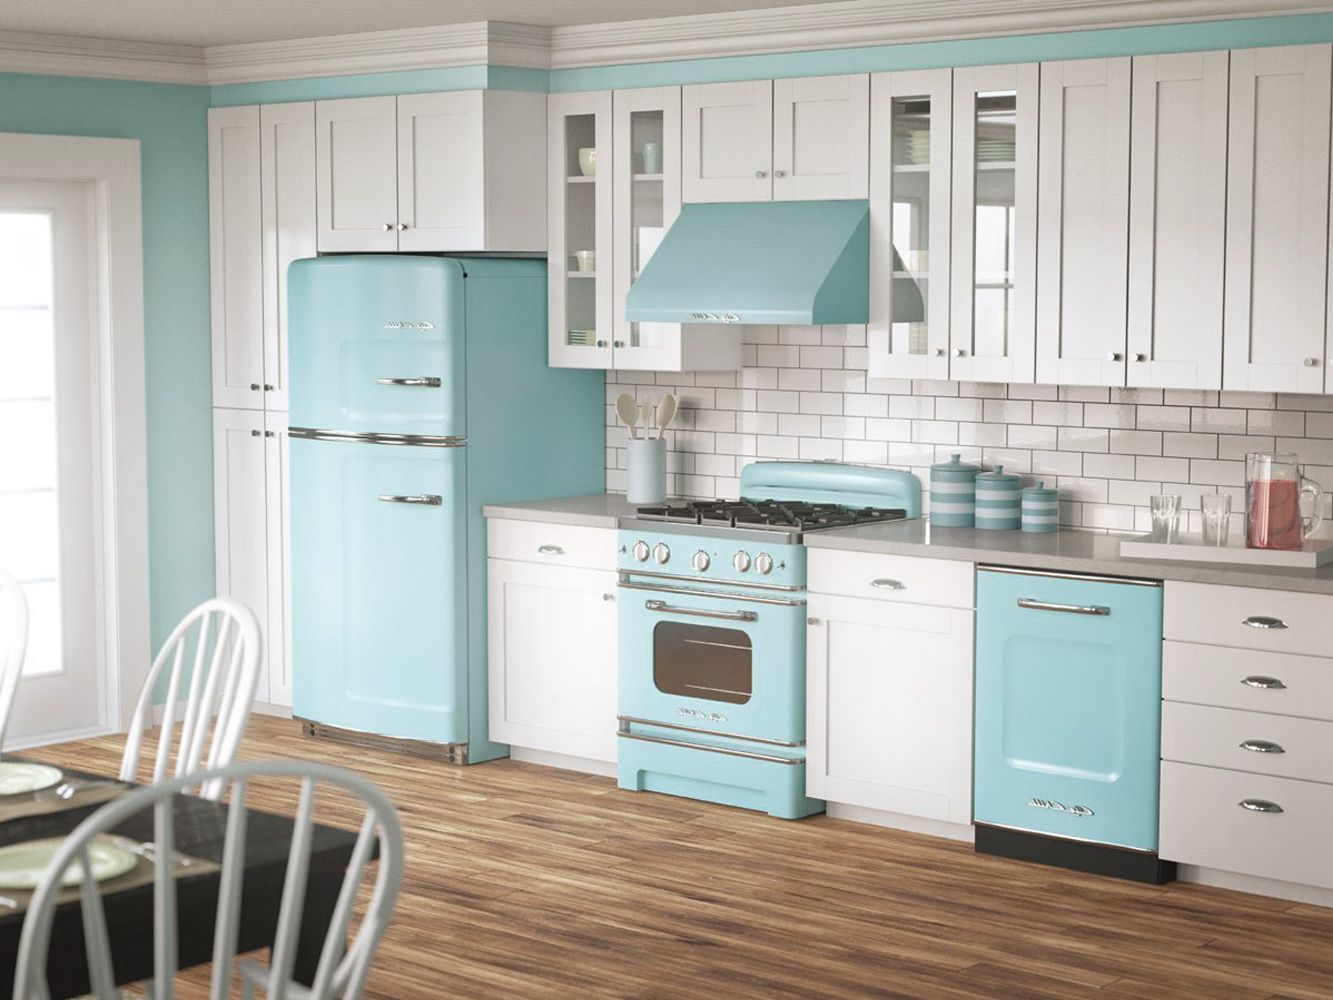 1950S Kitchens Beauteous 1950S Pastel Colors Kitchen Interior Ideas  Home Design Decorating Design